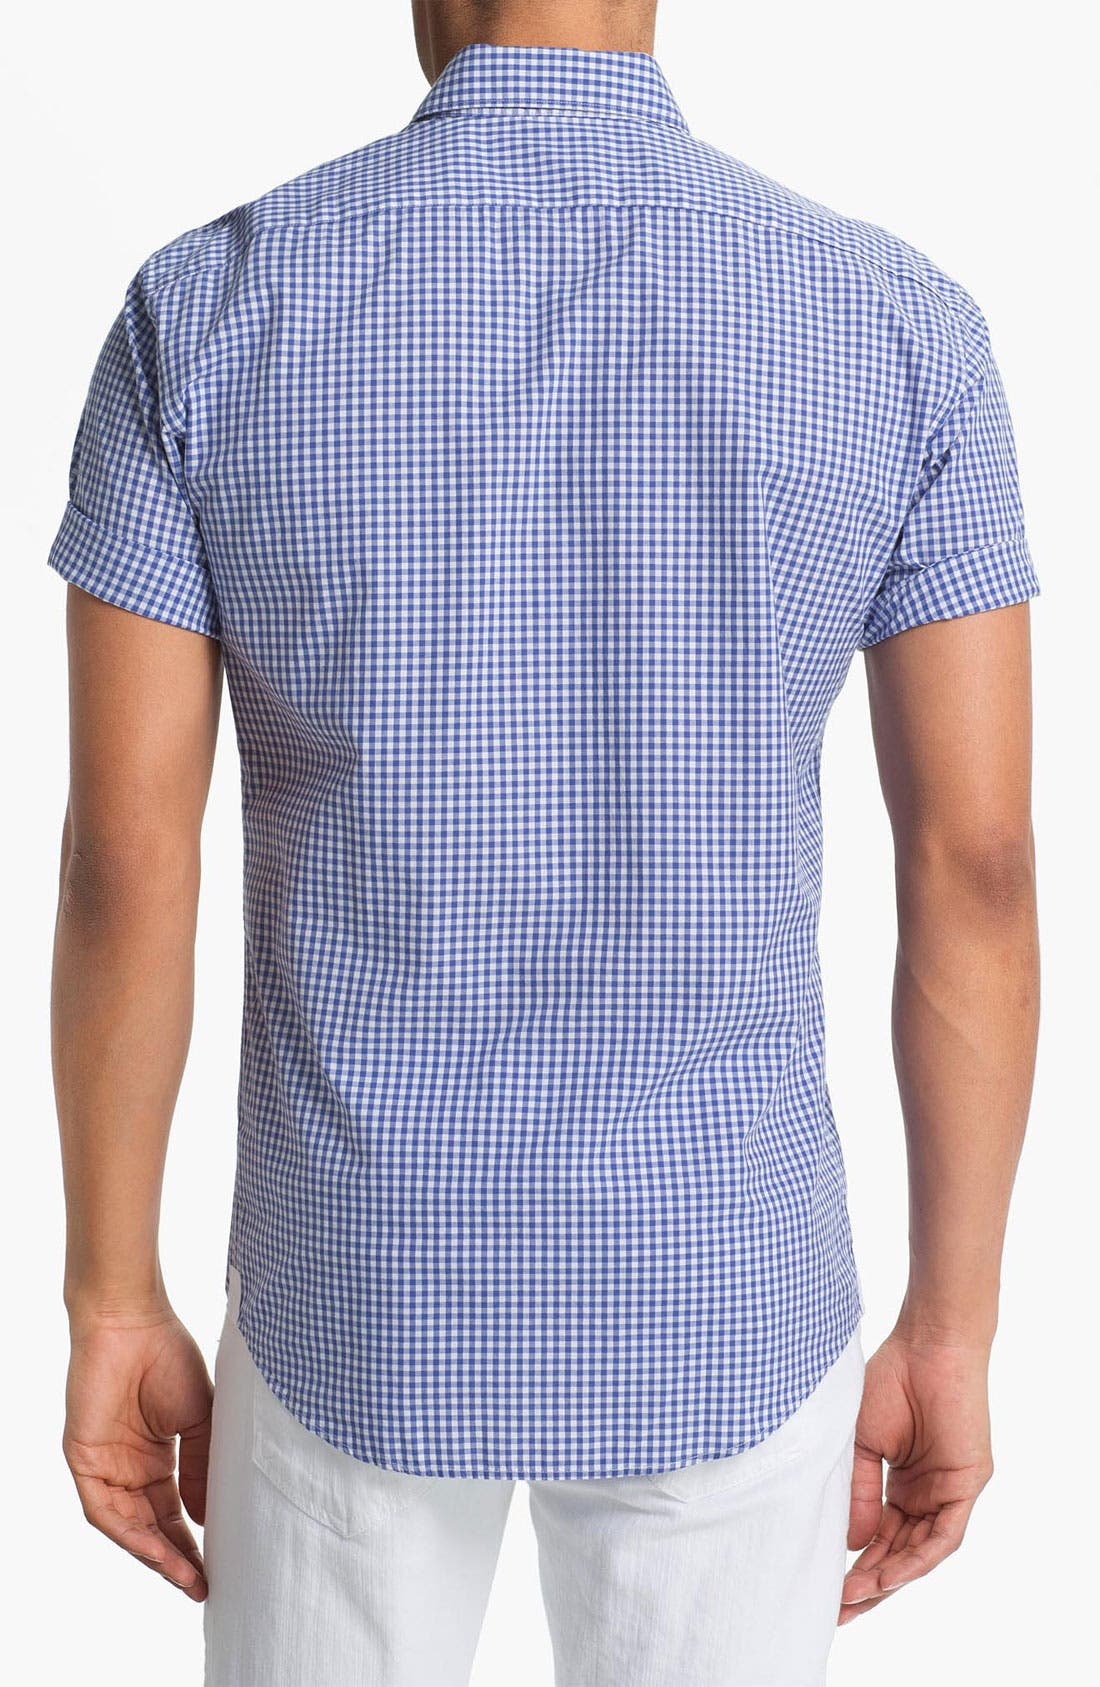 Alternate Image 2  - Lacoste Short Sleeve Button Down Shirt (Tall)